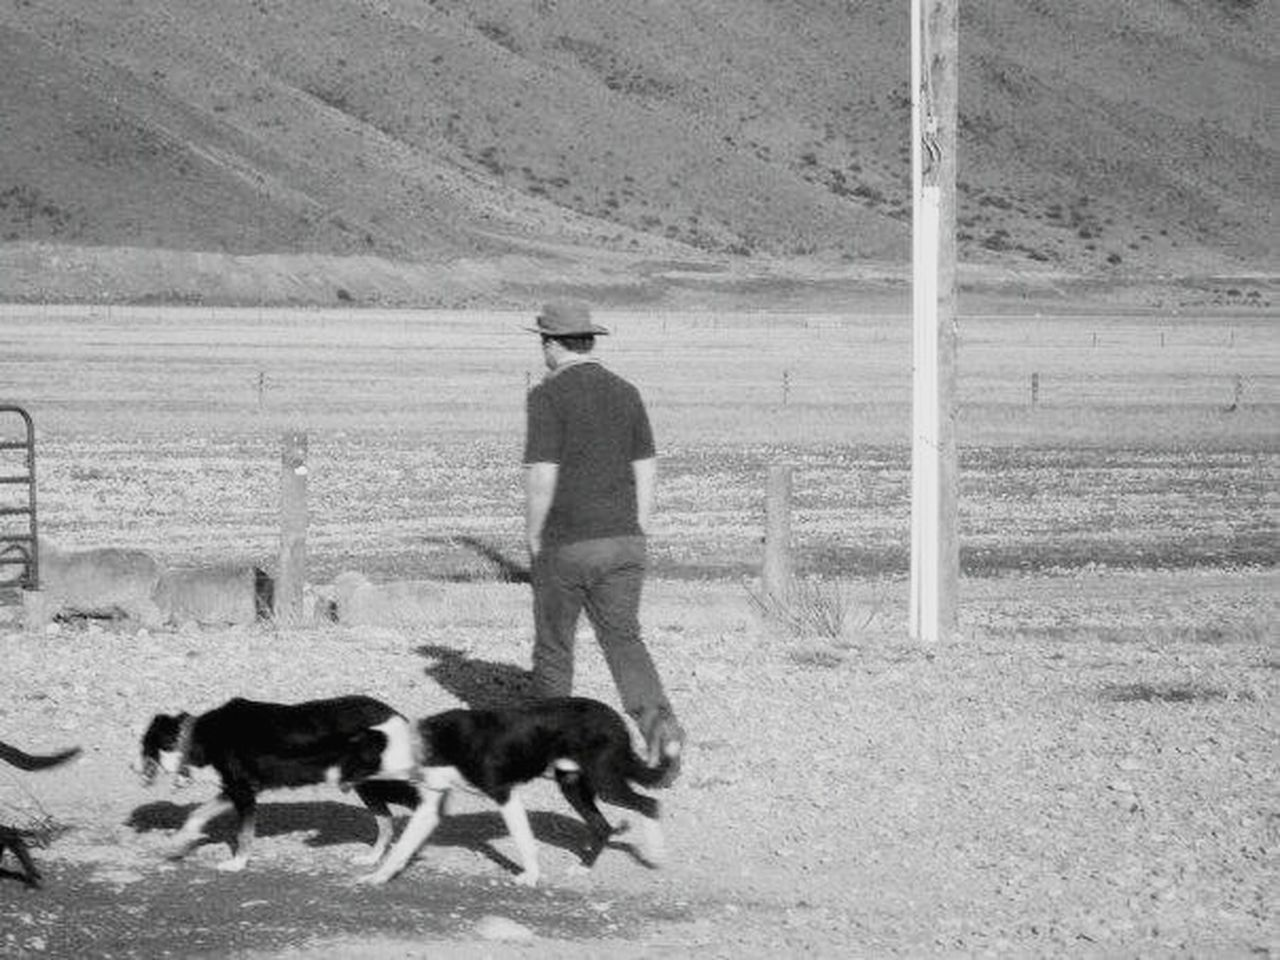 dog, pets, one man only, only men, adult, adults only, one person, domestic animals, people, outdoors, men, one animal, full length, mammal, day, nature